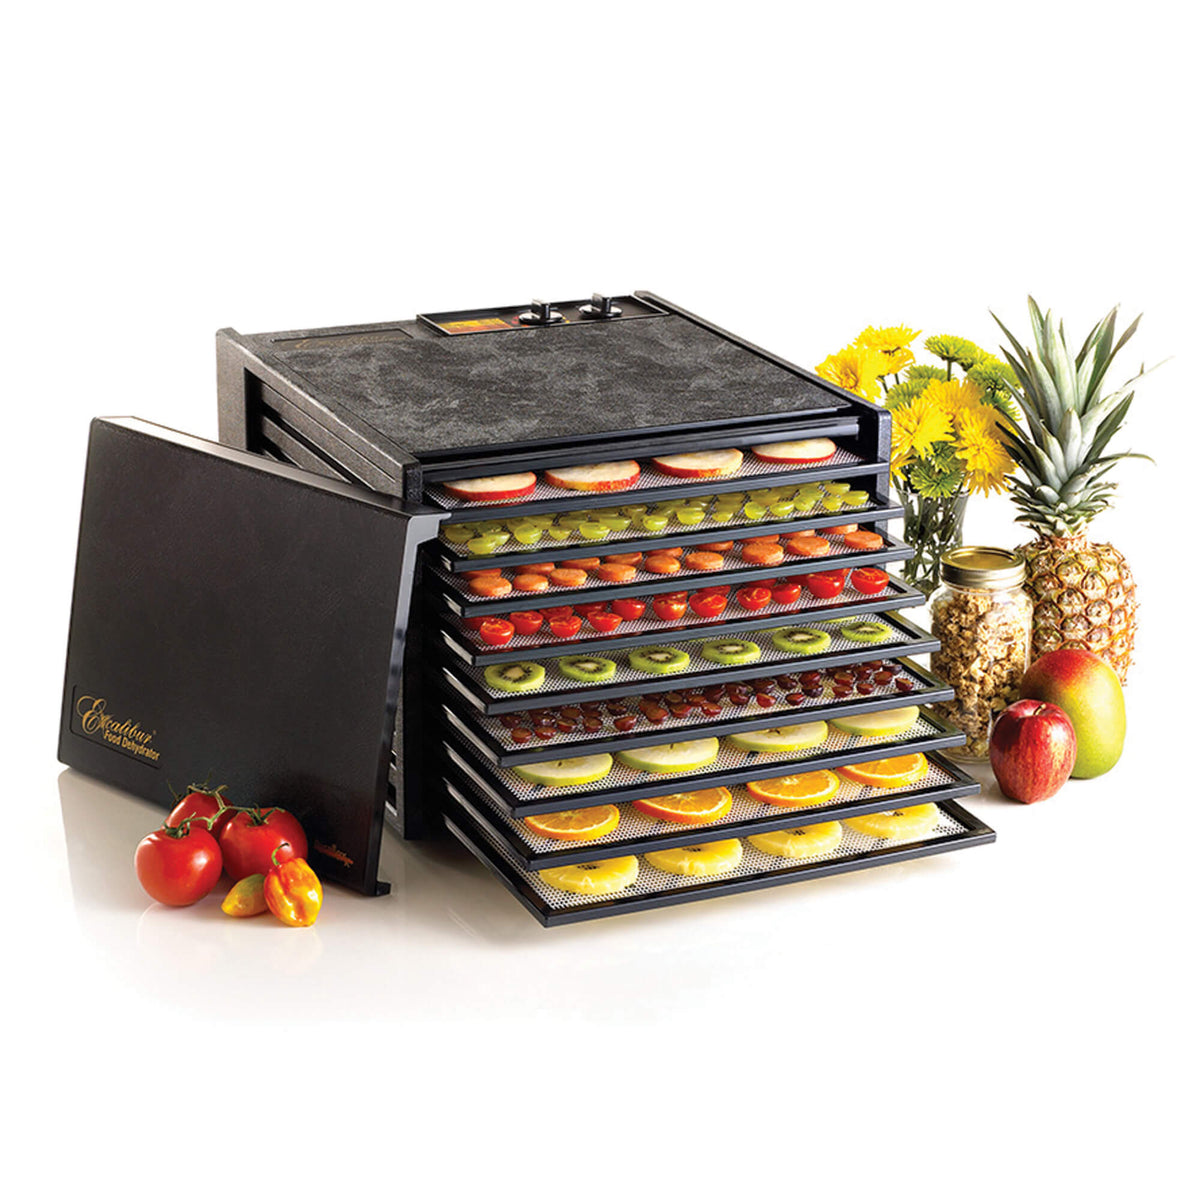 Excalibur 4926TB black 9 tray dehydrator with door propped to the side and food on the trays.